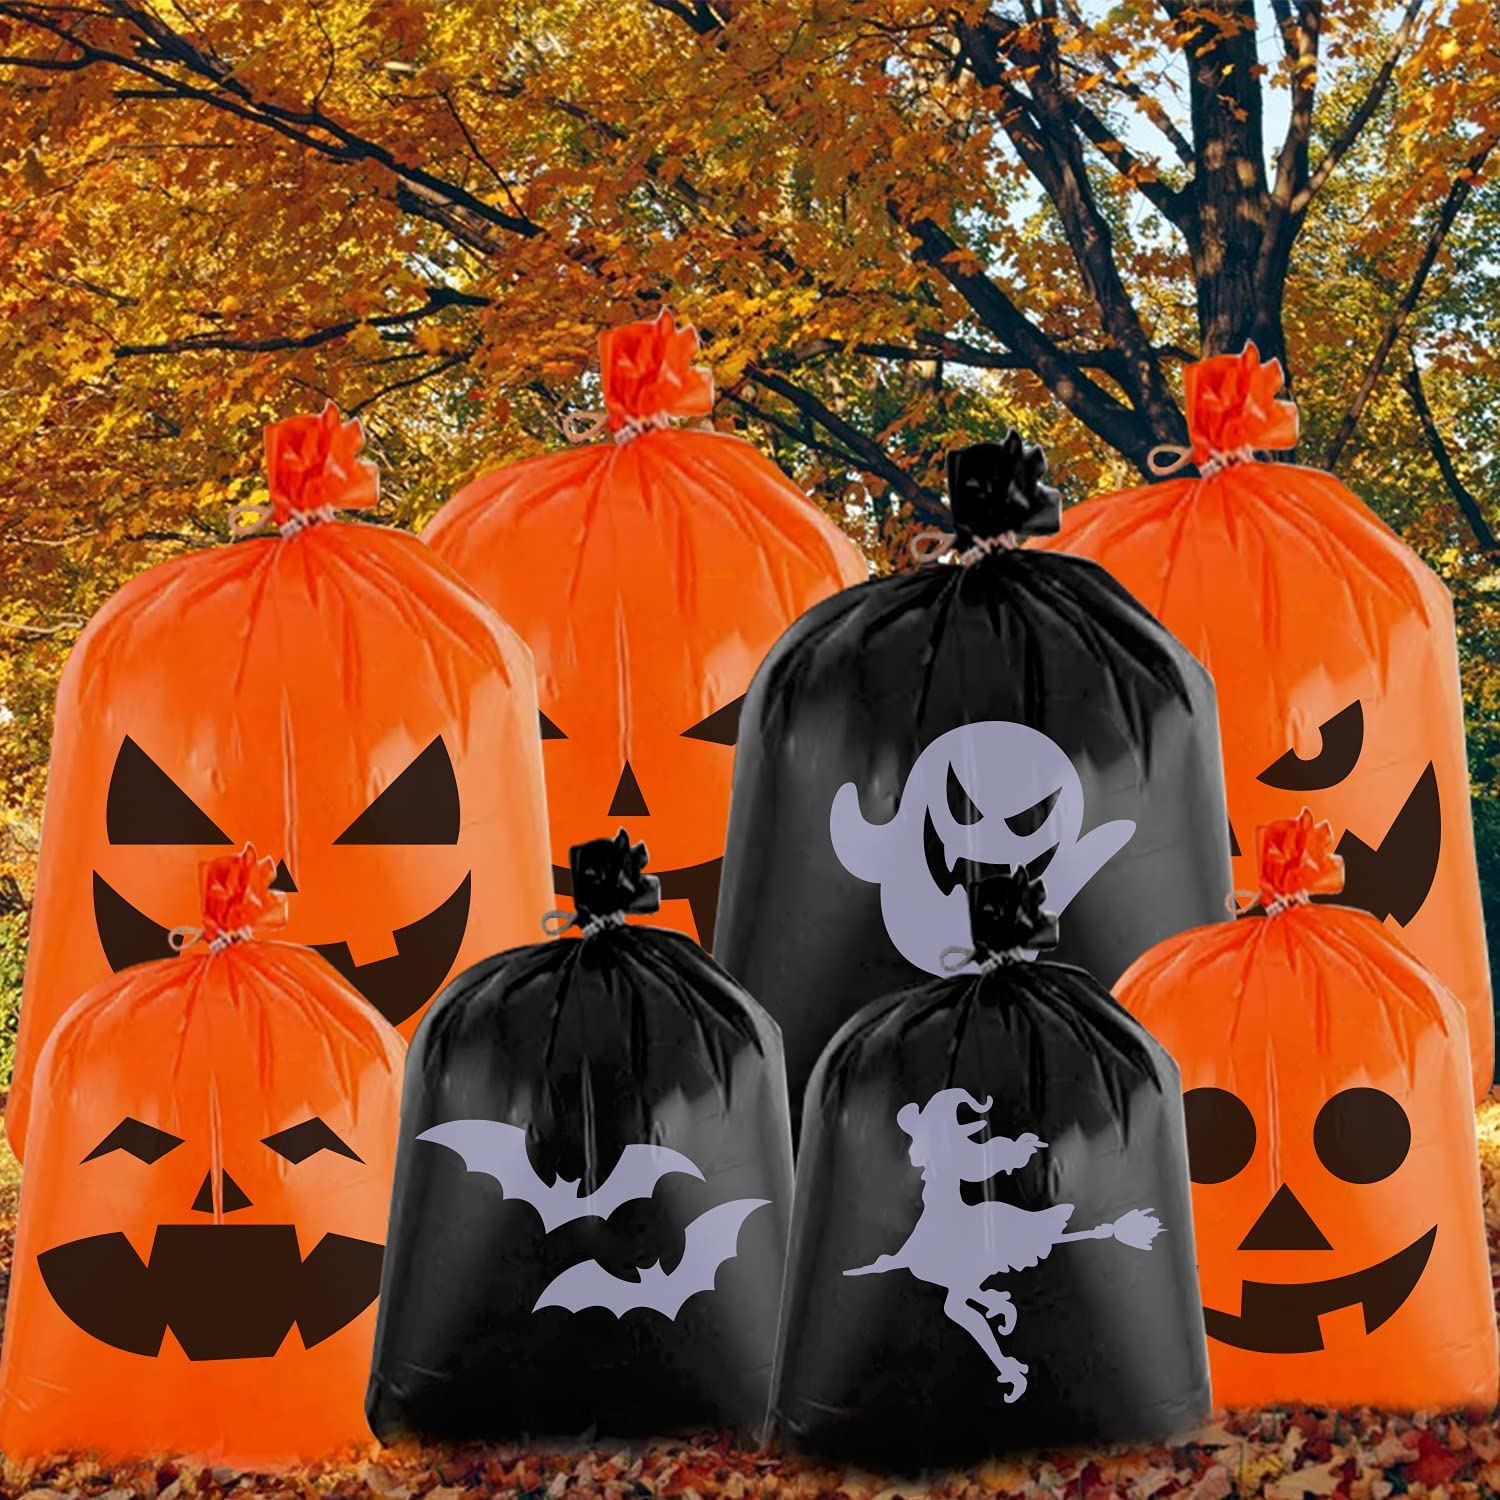 8 PCS Halloween Large Lawn OFFicial store Pattern 36'âwith Gifts Leaf Bags